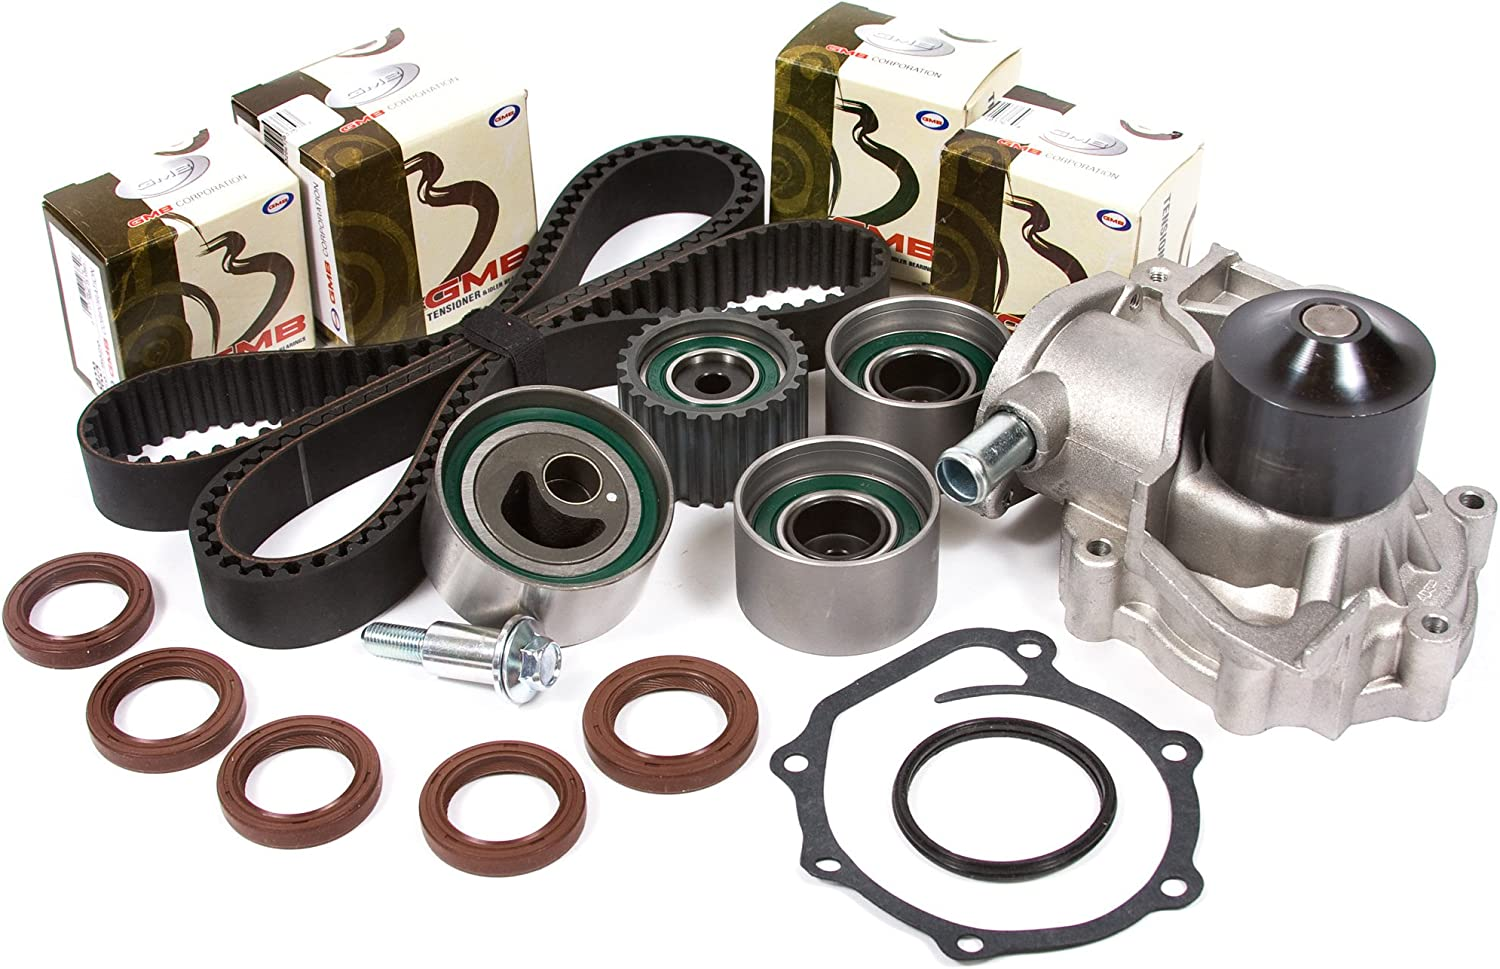 Evergreen TBK277WPT Compatible With Legacy Subaru 96-97 Outback Super sale period Max 72% OFF limited